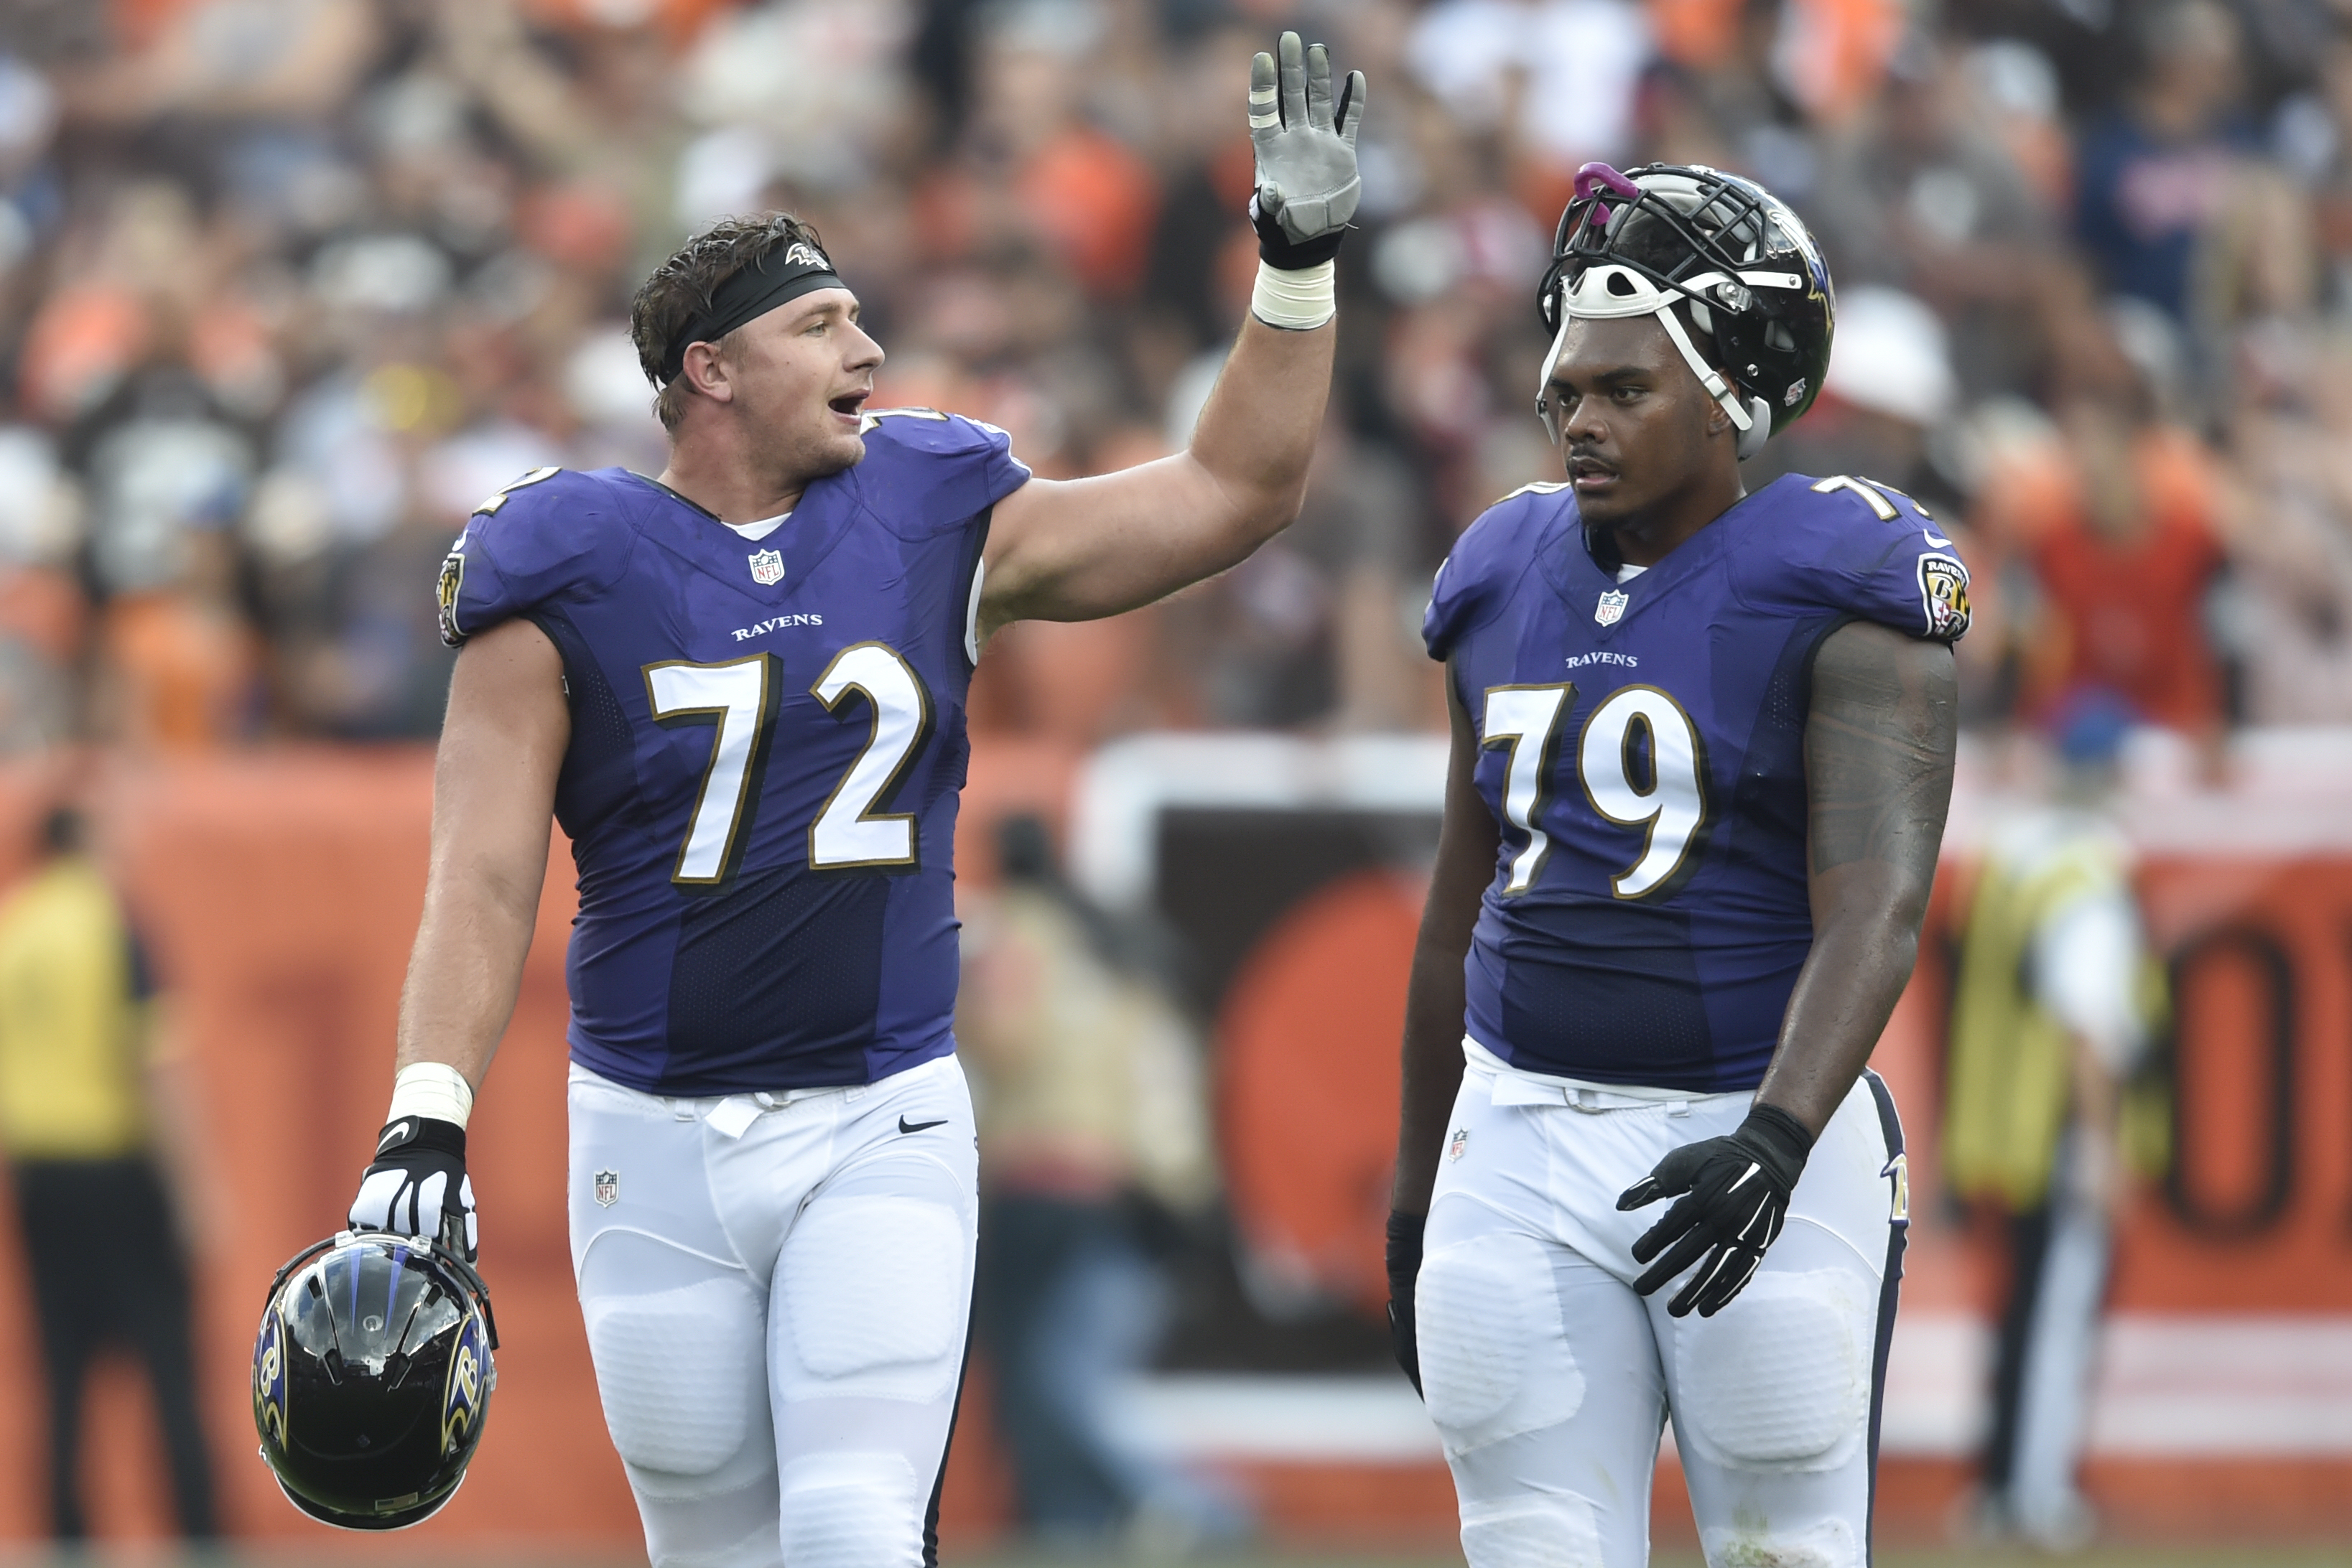 FILE- In this Sept. 18, 2016, file photo, Baltimore Ravens offensive guard Alex Lewis (72) and offensive tackle Ronnie Stanley (79) stand on the field in the first half of an NFL football game against the Cleveland Browns in Cleveland.  Lewis, a fourth-ro